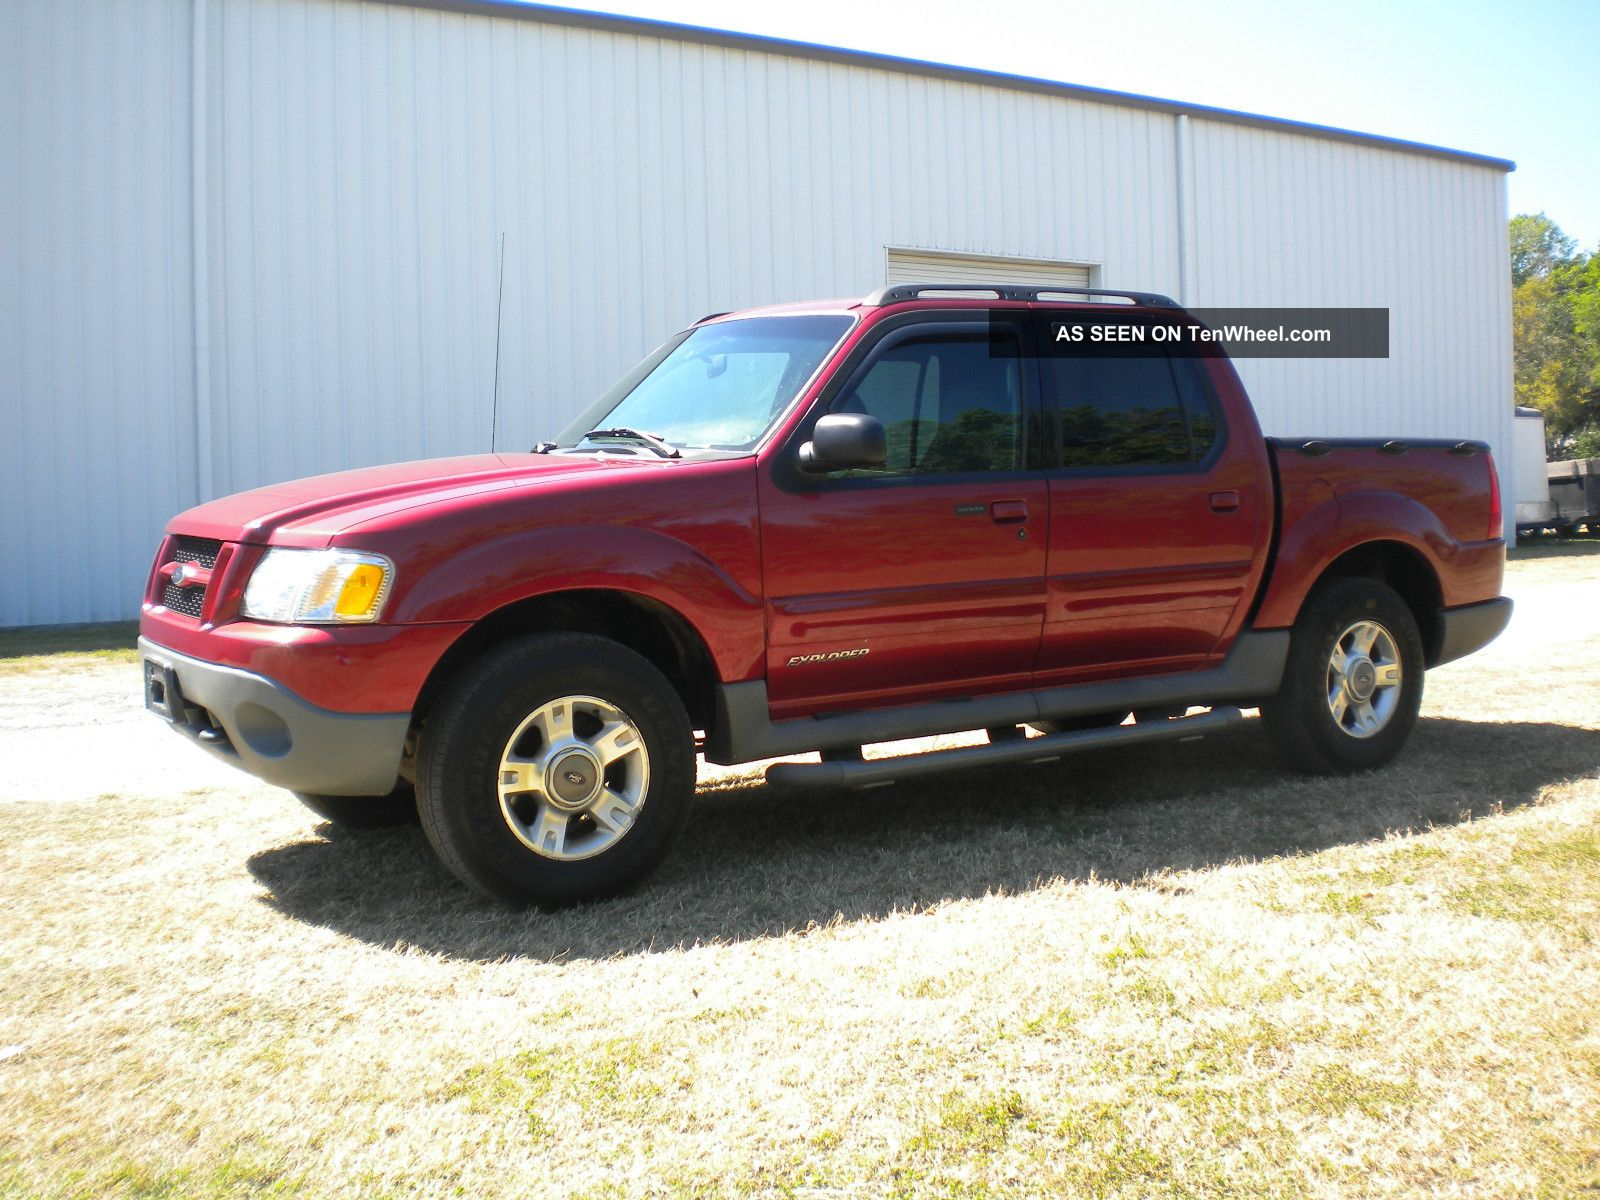 2001 ford explorer sport trac 4x4 4wd explorer sport trac photo 1. Cars Review. Best American Auto & Cars Review